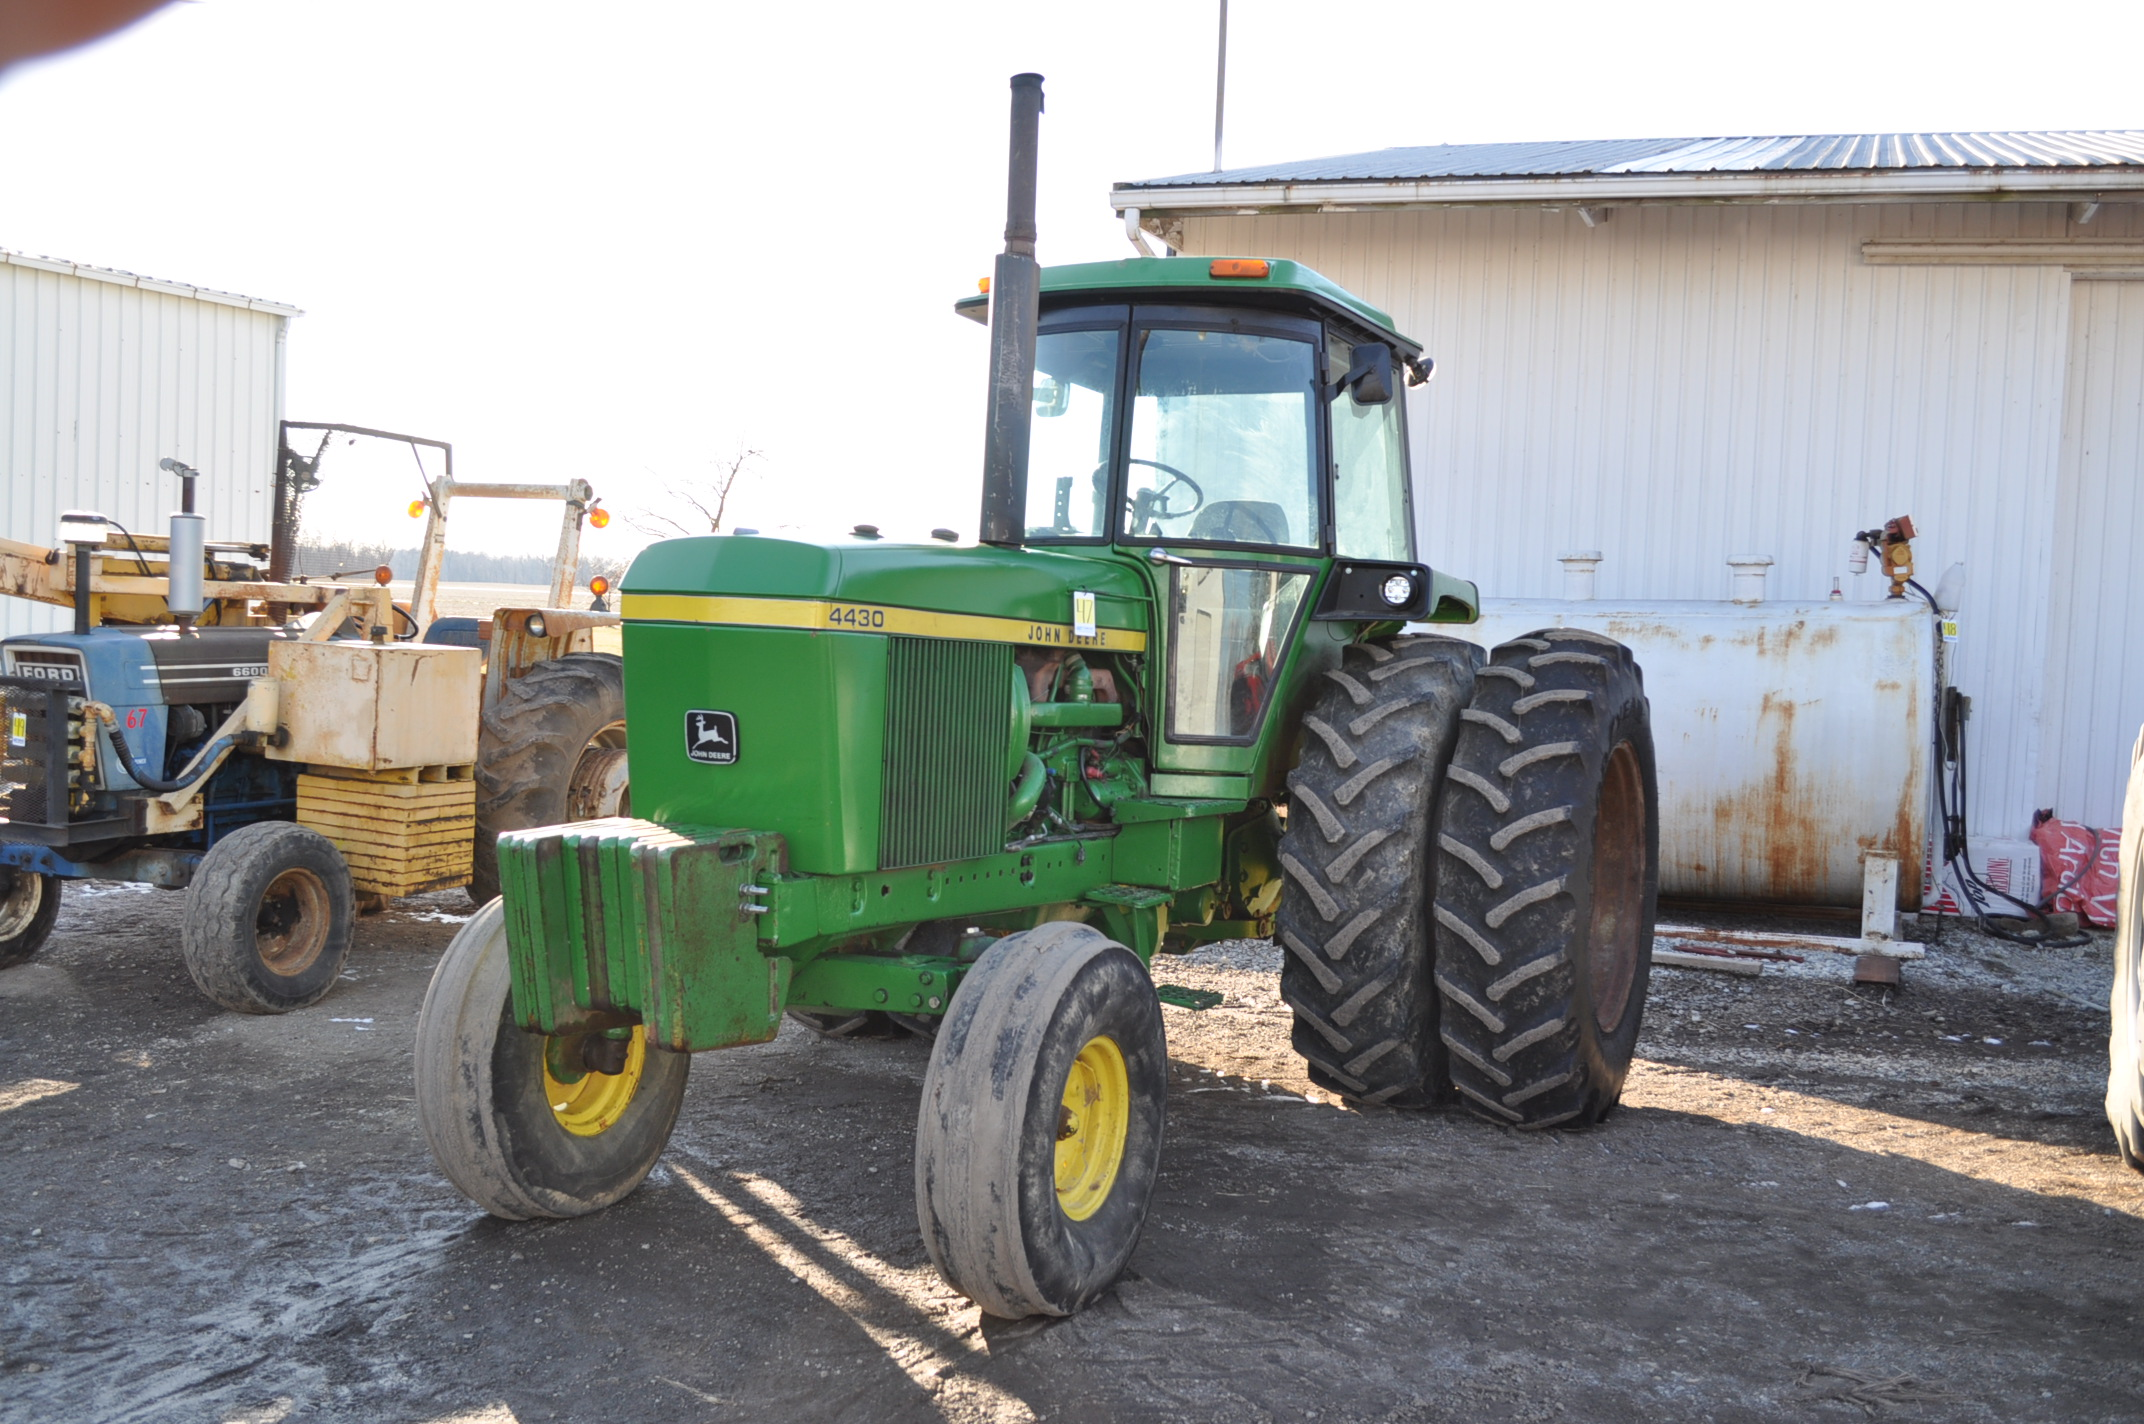 John Deere 4430 tractor, C/H/A, 18.4-38 duals, 11.00-16 front, front weights, Quad range, 2 hyd, 3 - Image 2 of 18